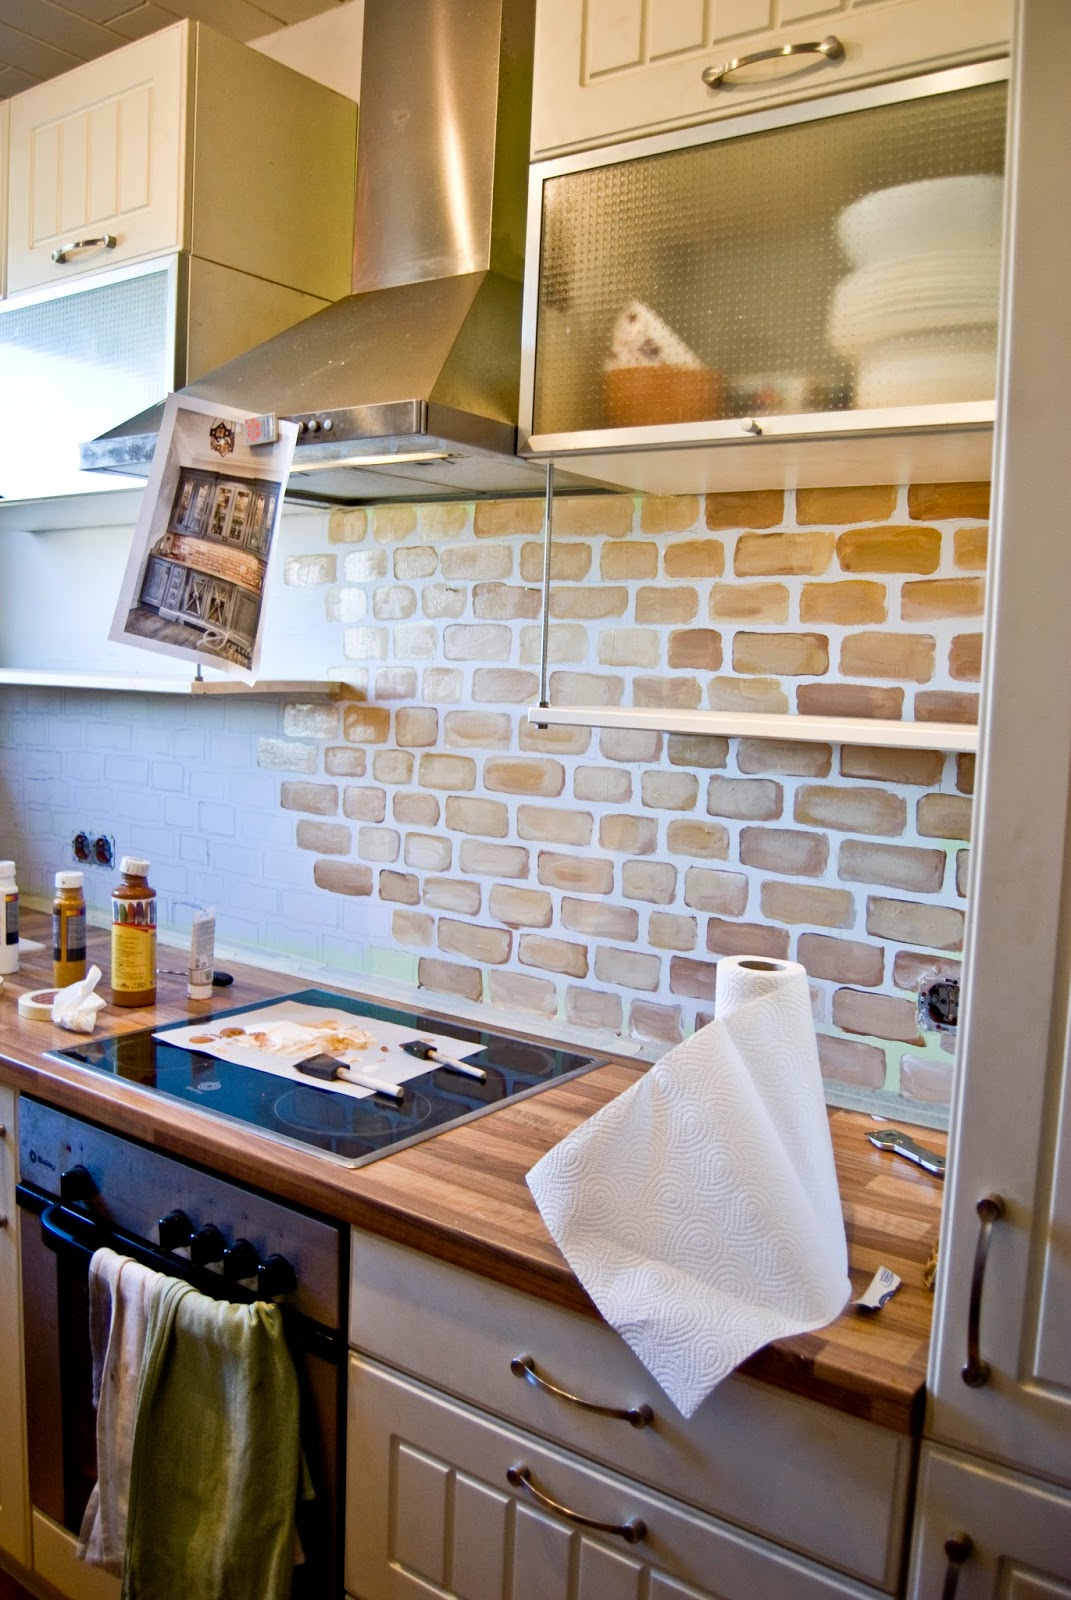 Remodelaholic | Tiny Kitchen Renovation with Faux Painted Brick ...